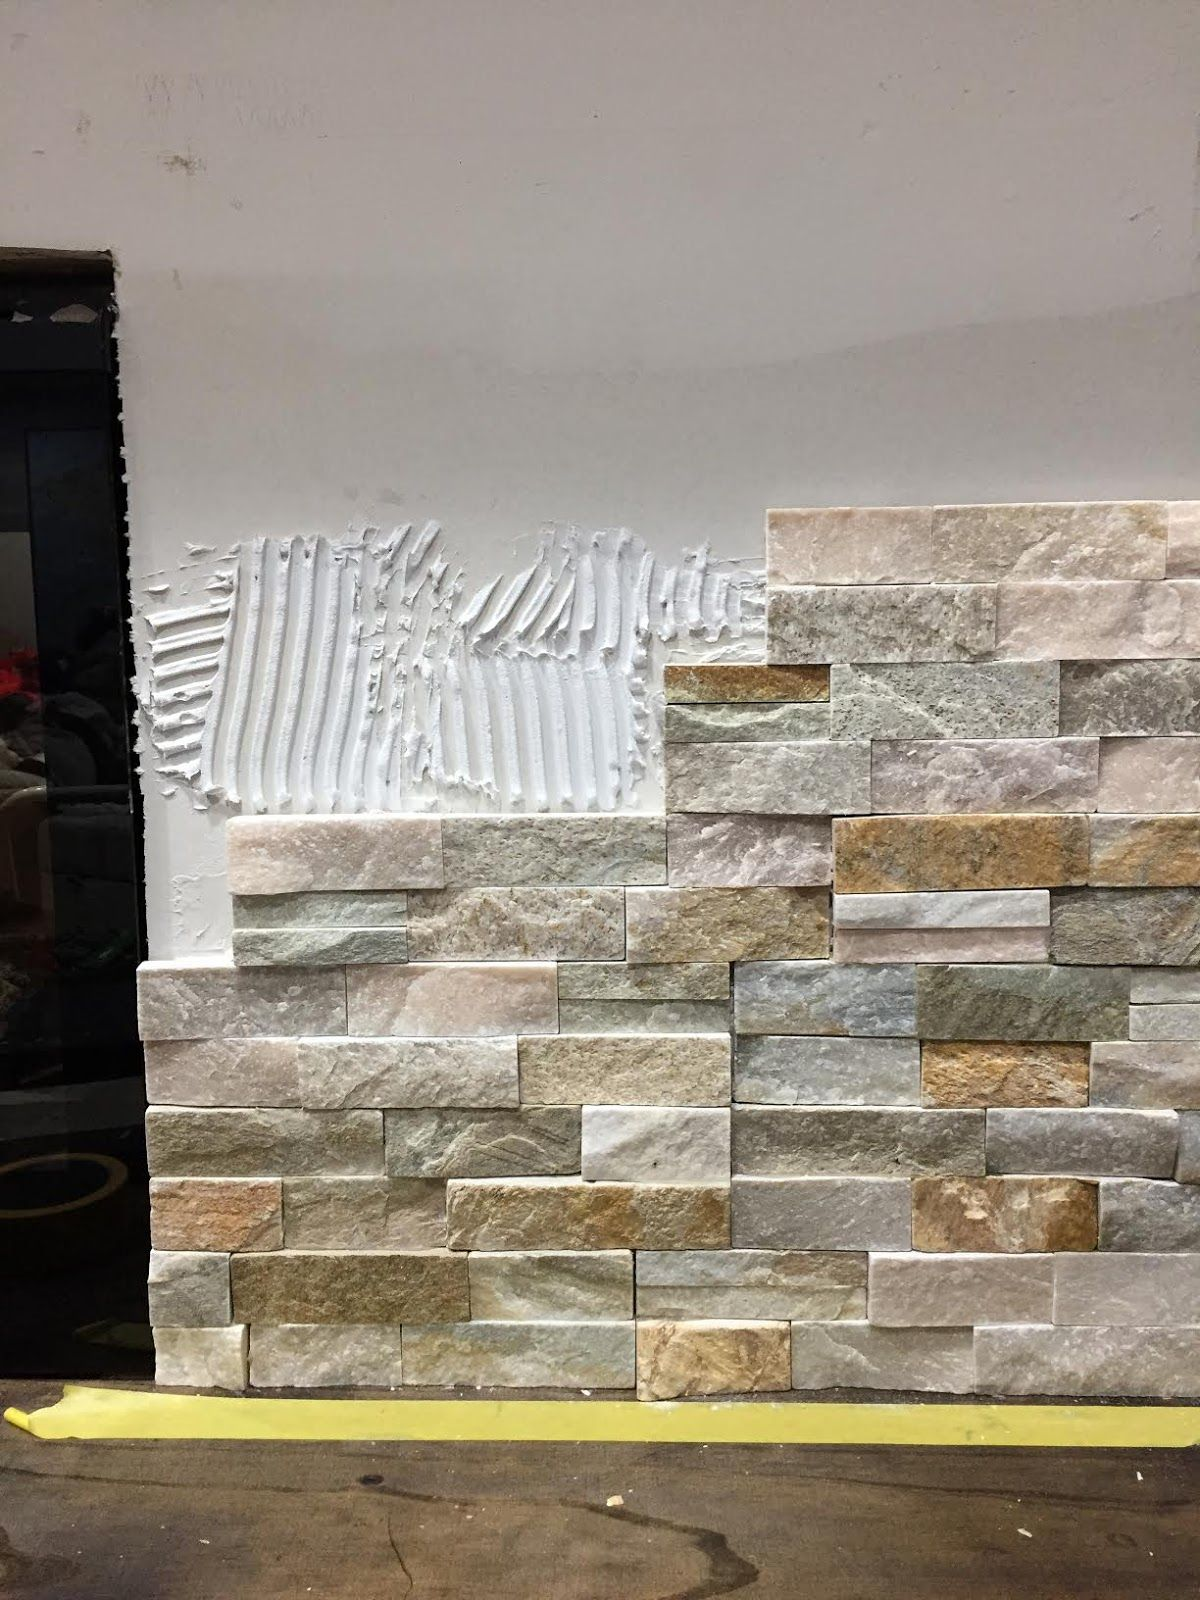 Granite Slab for Fireplace Hearth Inspirational How to Install Stacked Stone Tile On A Fireplace Wall